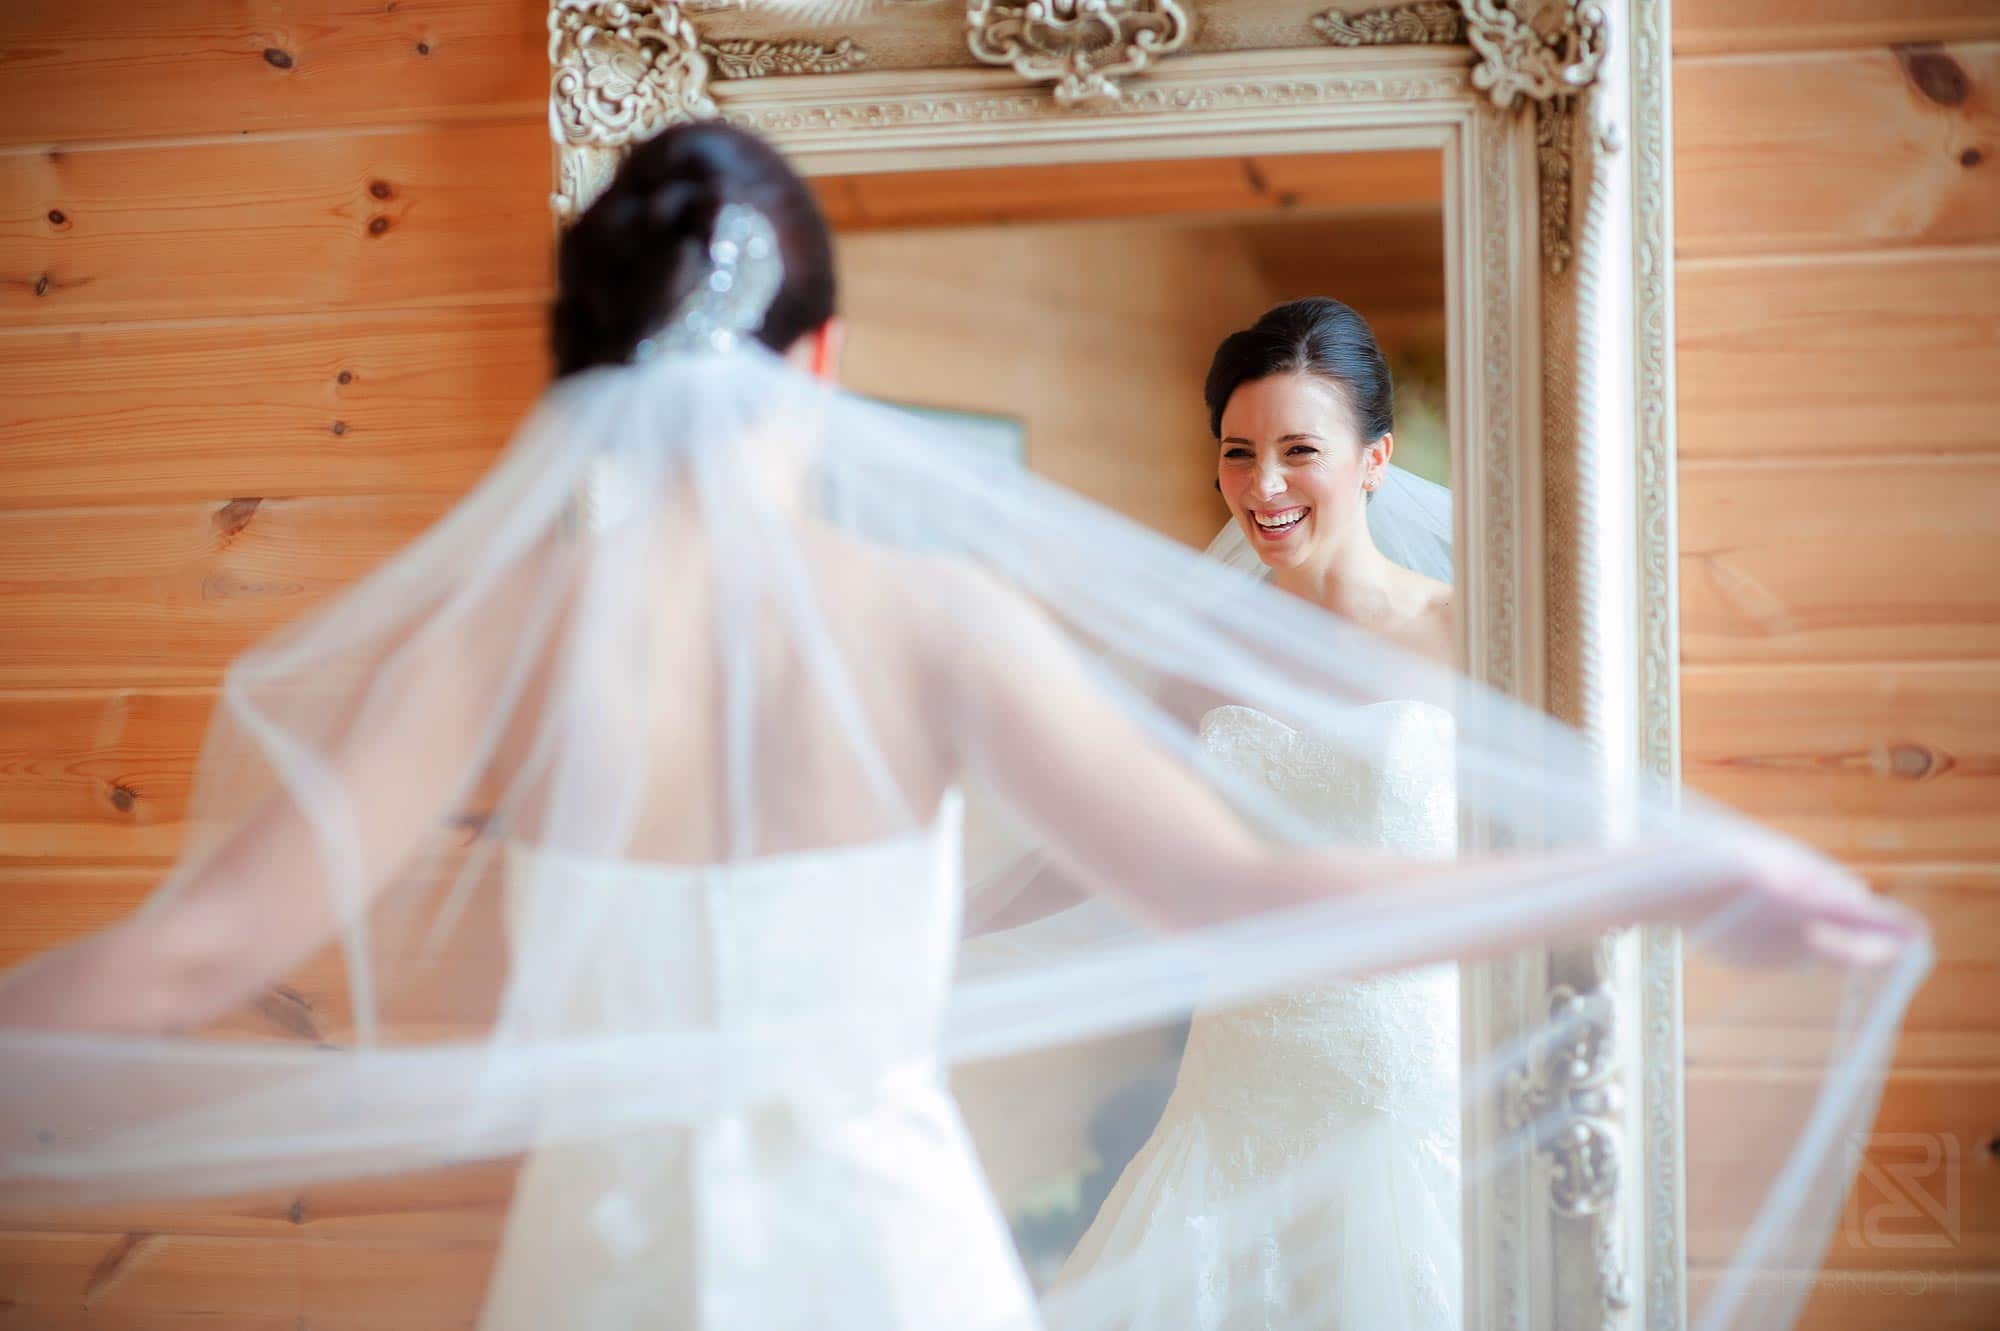 bride getting ready in Bridal Room at Styal Lodge